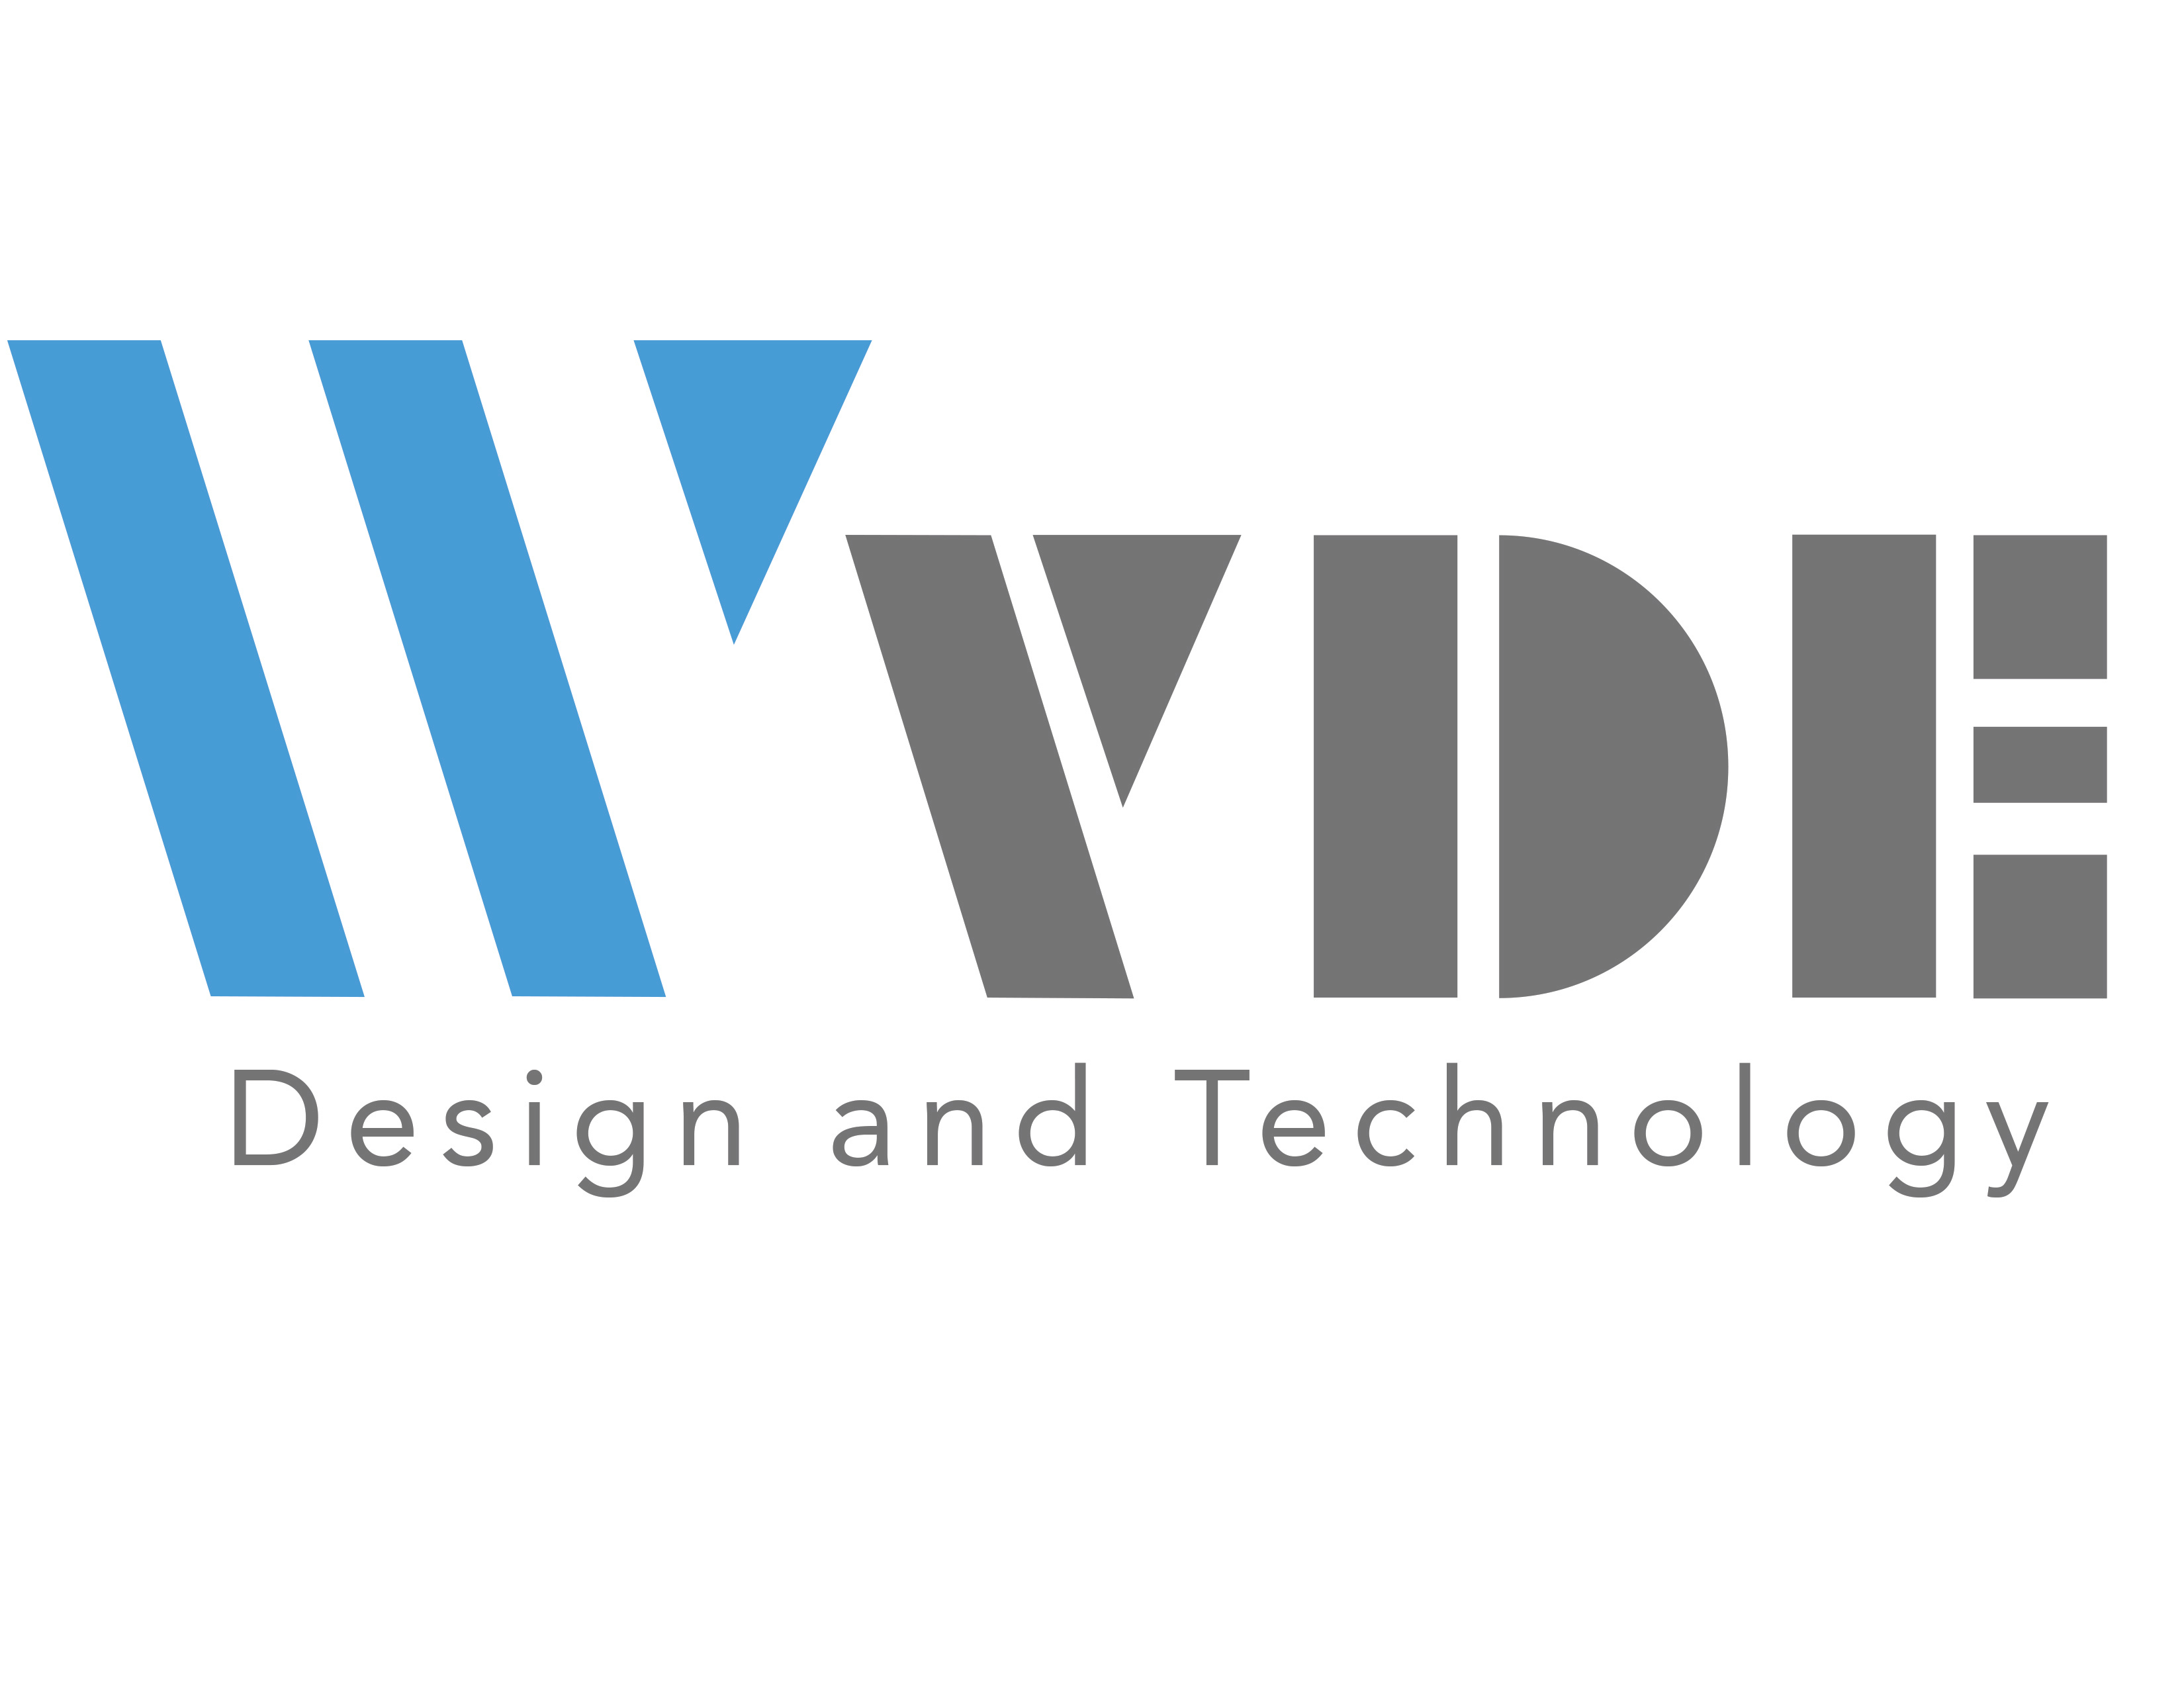 Wyde Design and Technology